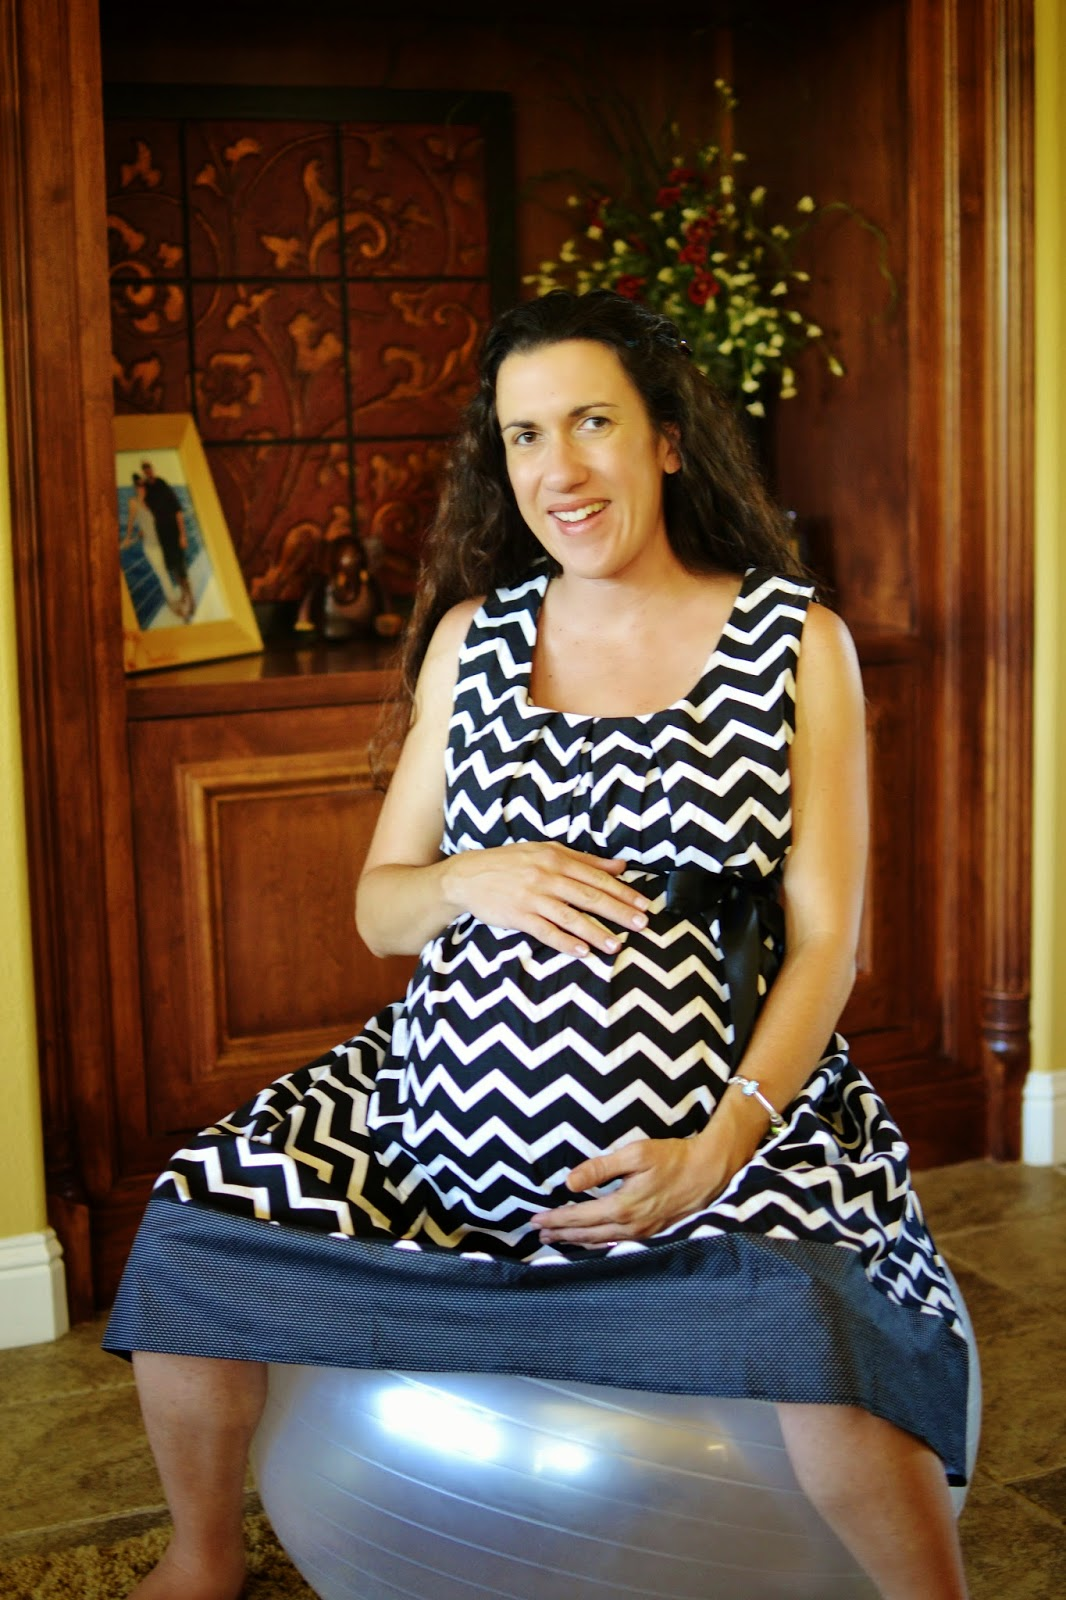 Love the comfort of this birthing gown!